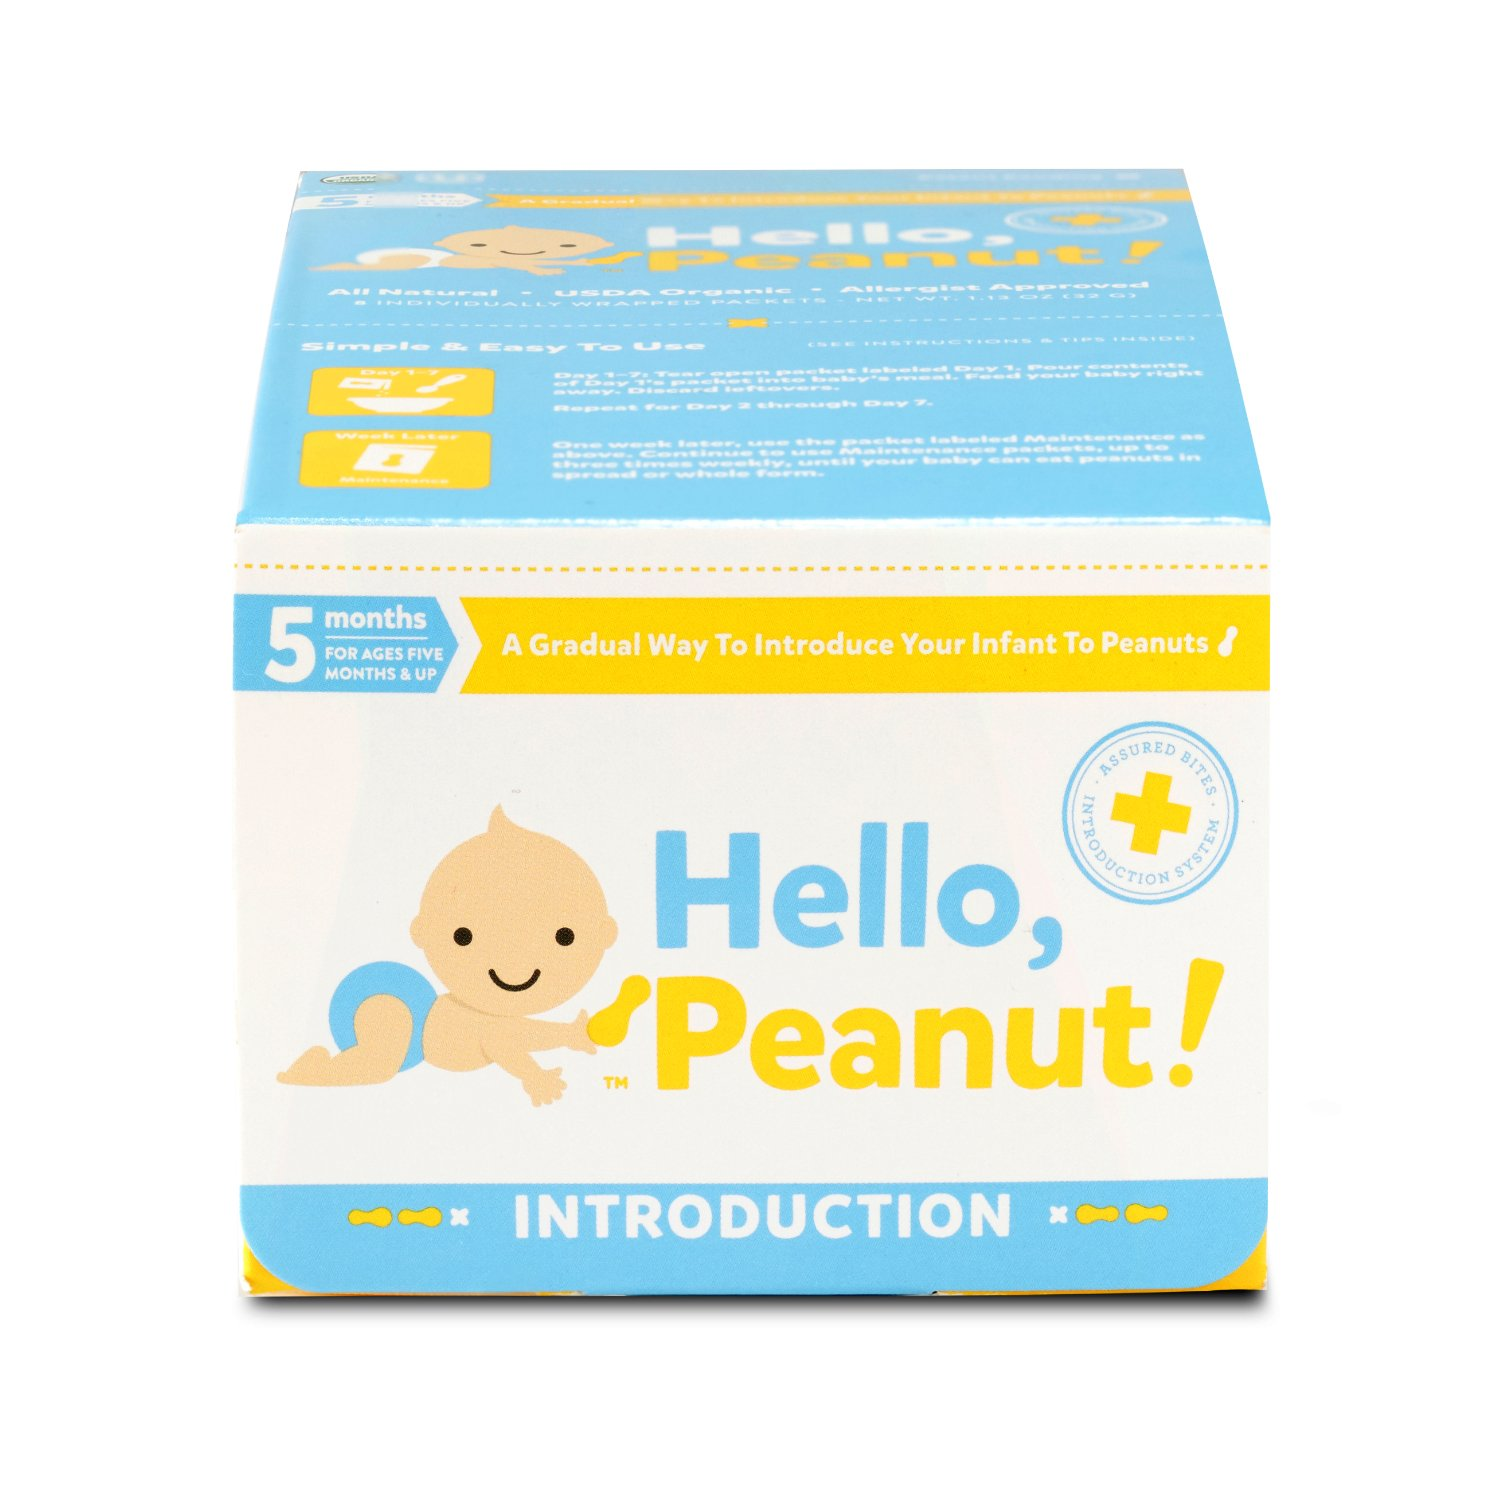 Hello, Peanut! Introduction System for A Gradual Way to Introduce Your Infant to Peanuts, 7 Day System, Allergist Approved, All Natural, USDA Organic, Simple to Use (8 Packets) by Hello, Peanut!